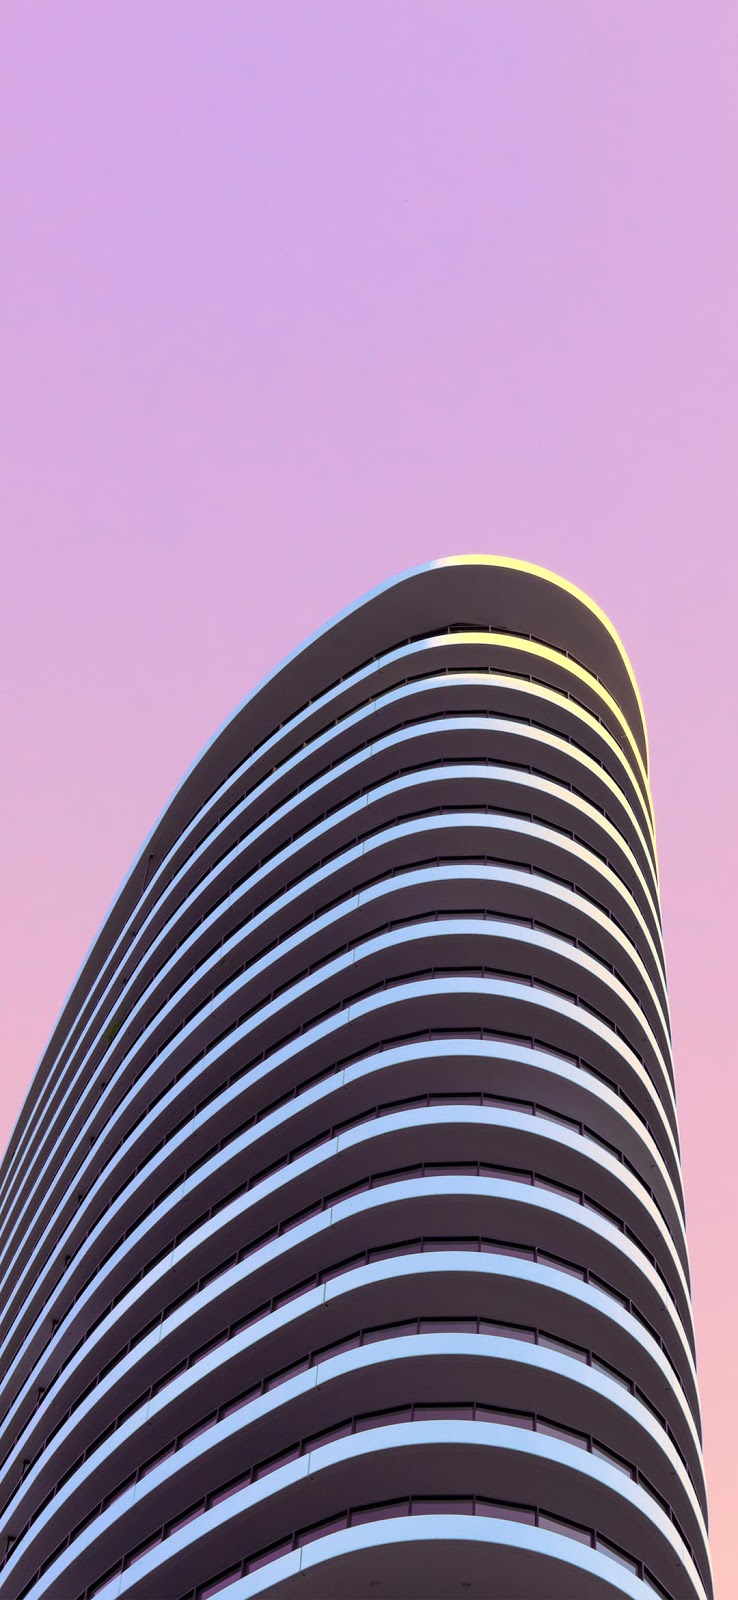 Cool striped building